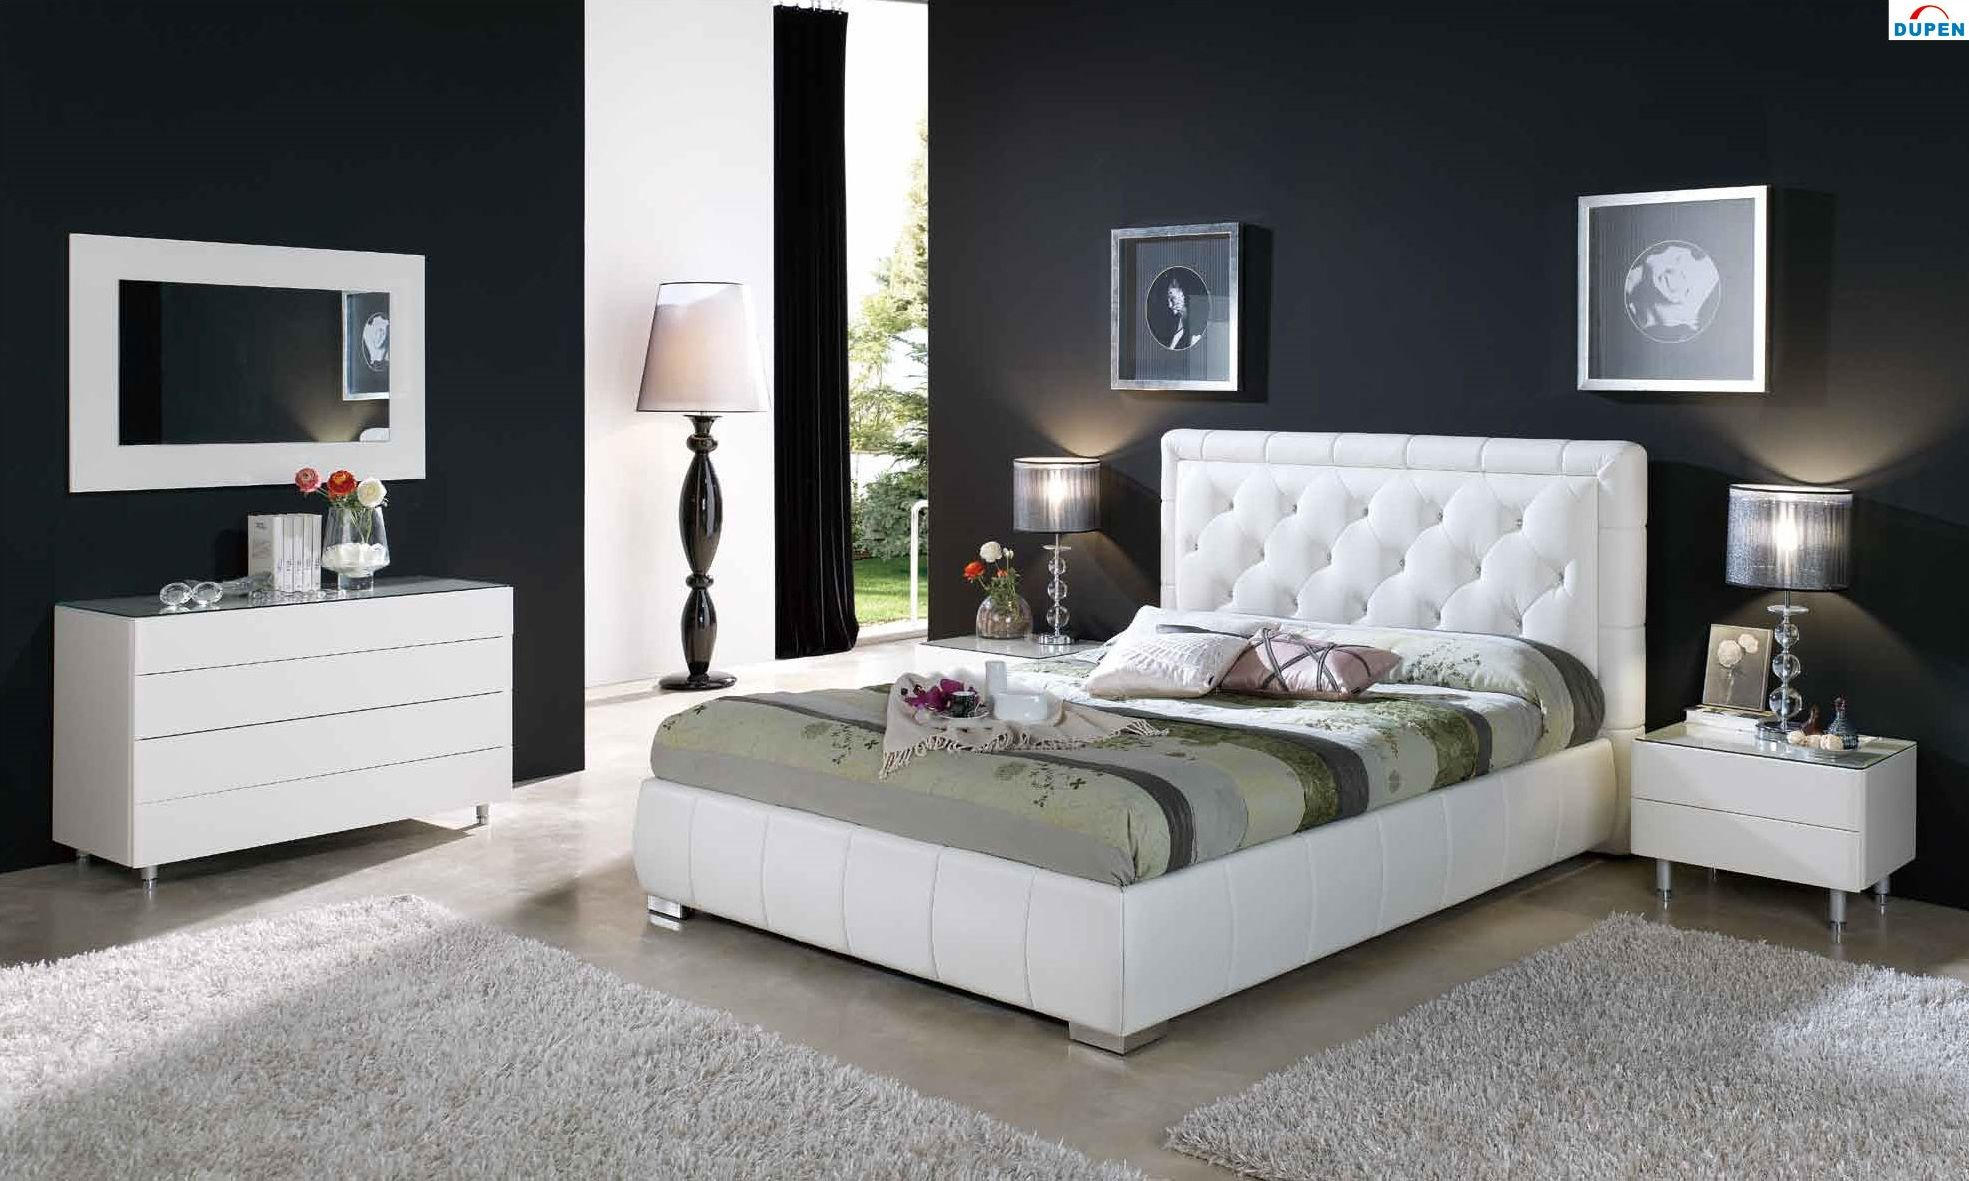 modern bedroom furniture design ideas photo - 10  Mebel